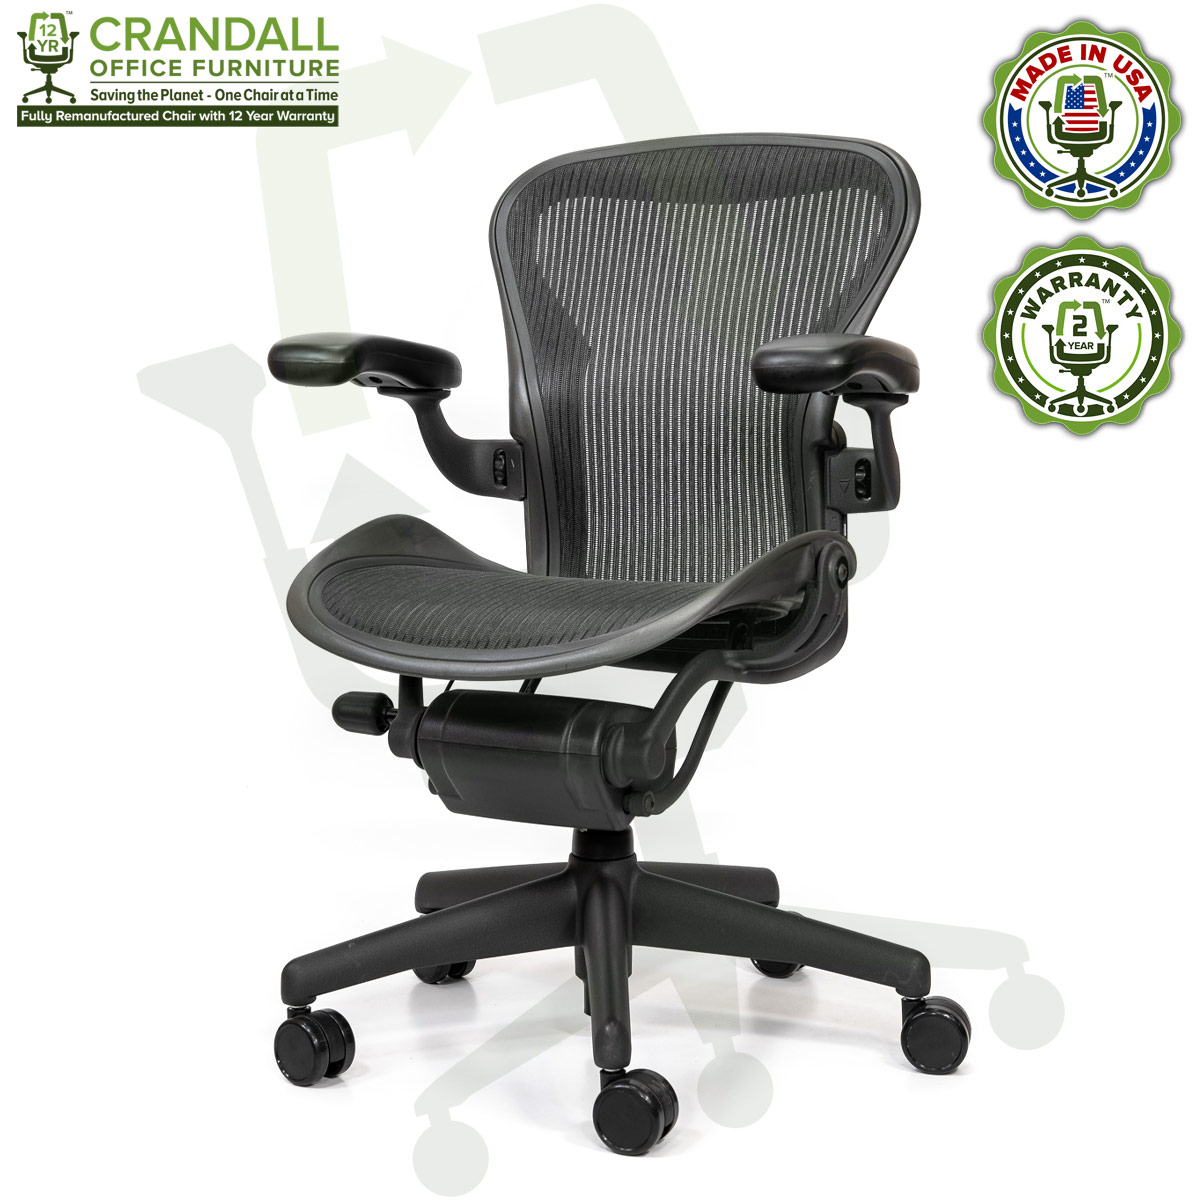 Crandall Office Refurbished Herman Miller Aeron Chair - Size A - 0002